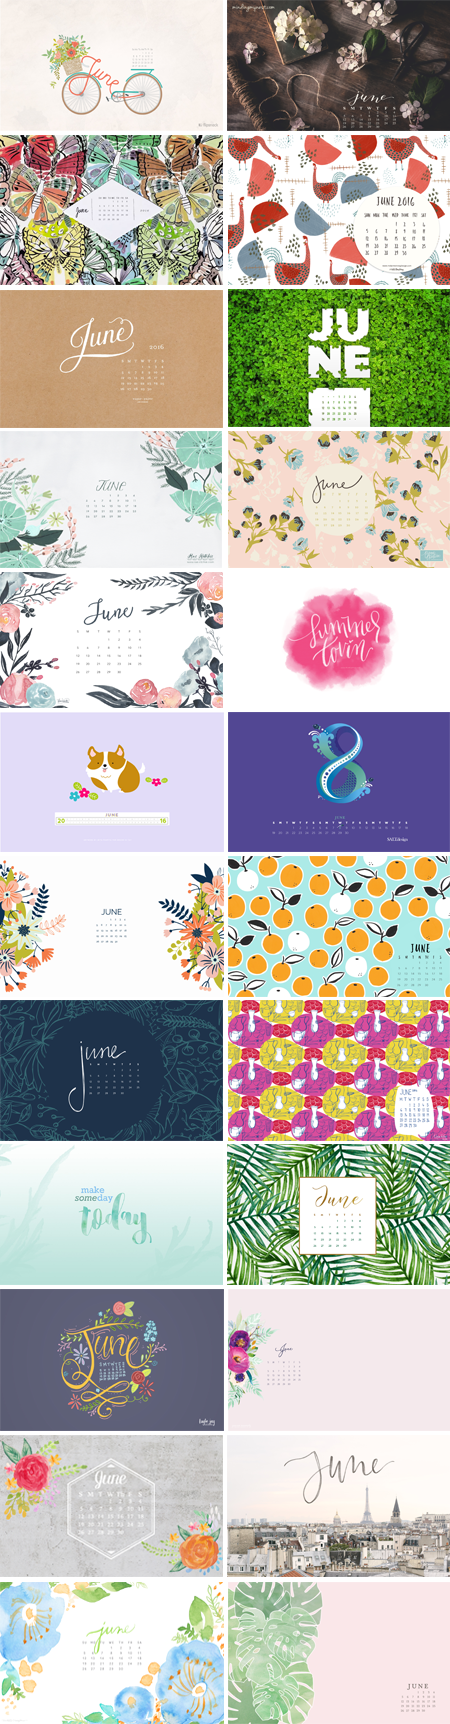 // June 2016 Wallpapers Round-up